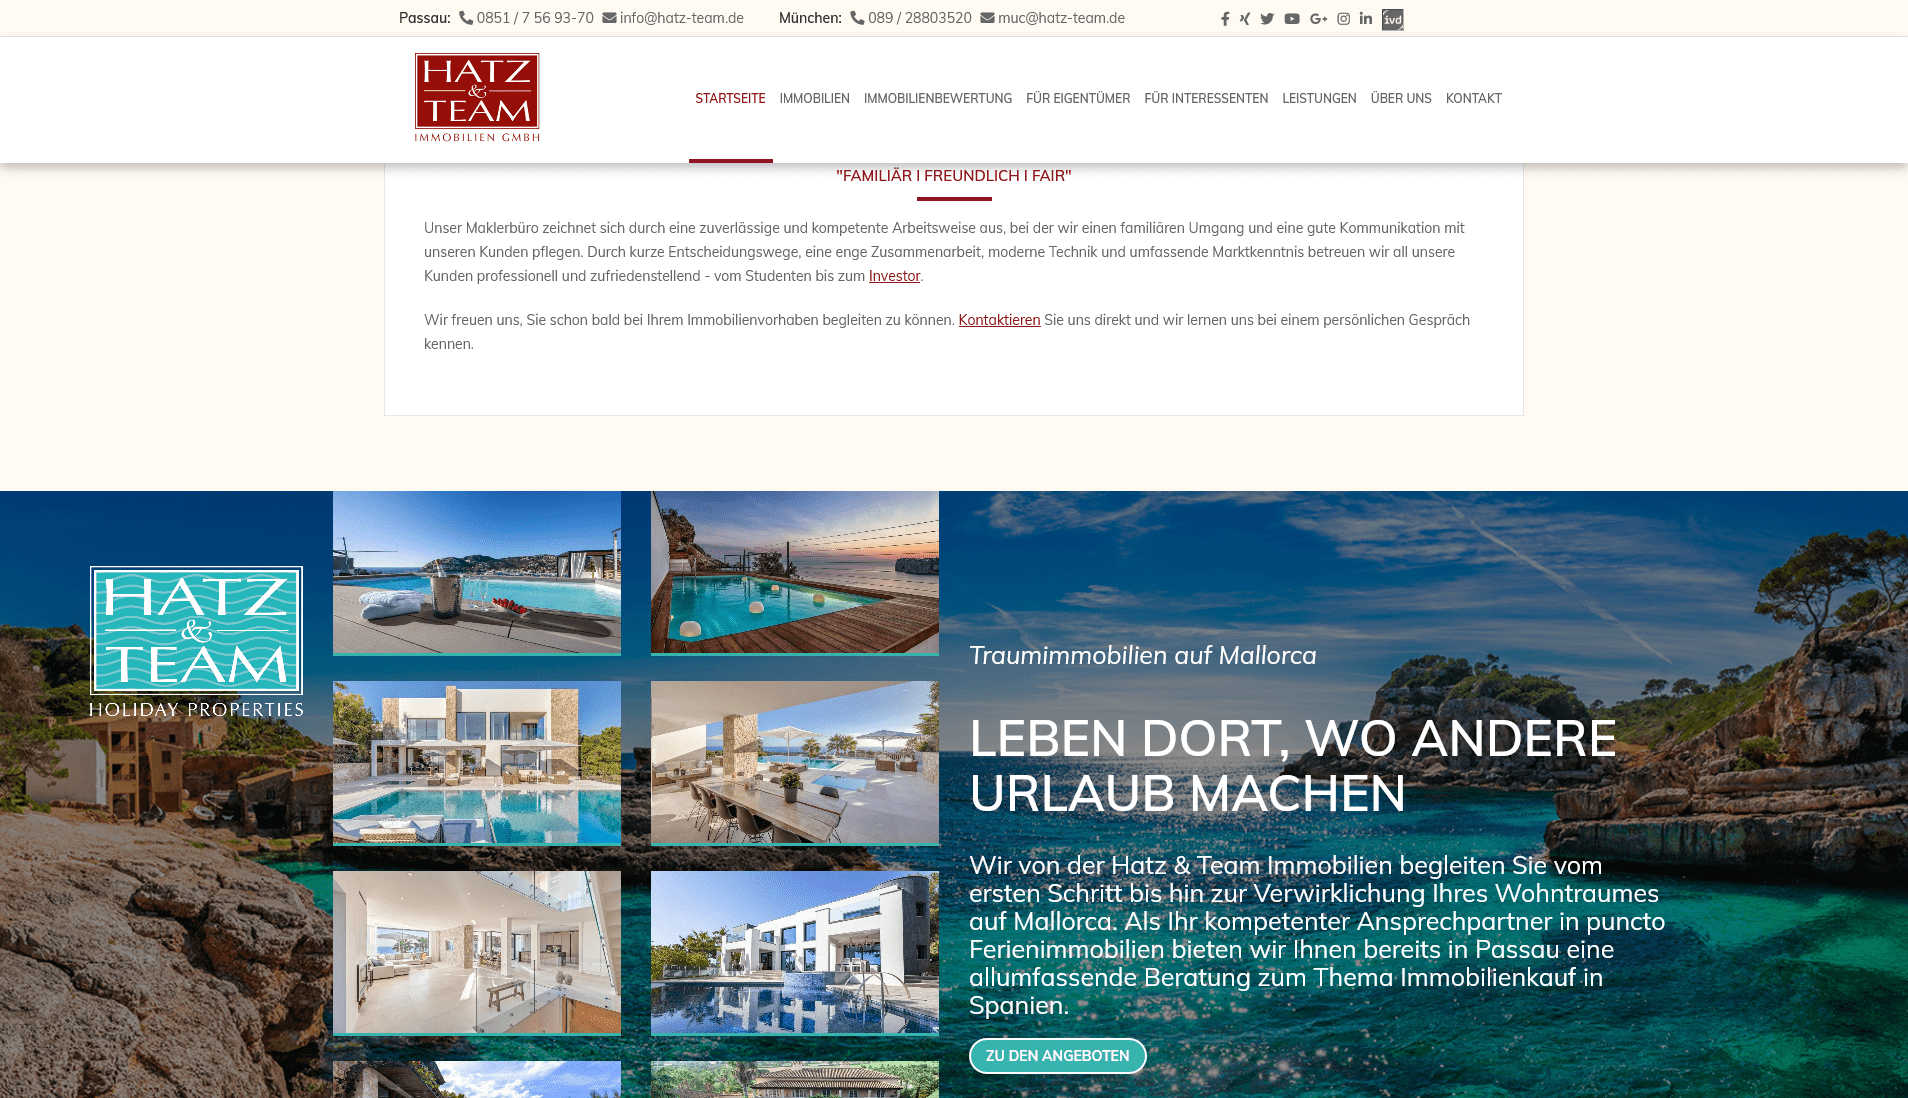 Hatz & Team Immobilien: Screenshot Website